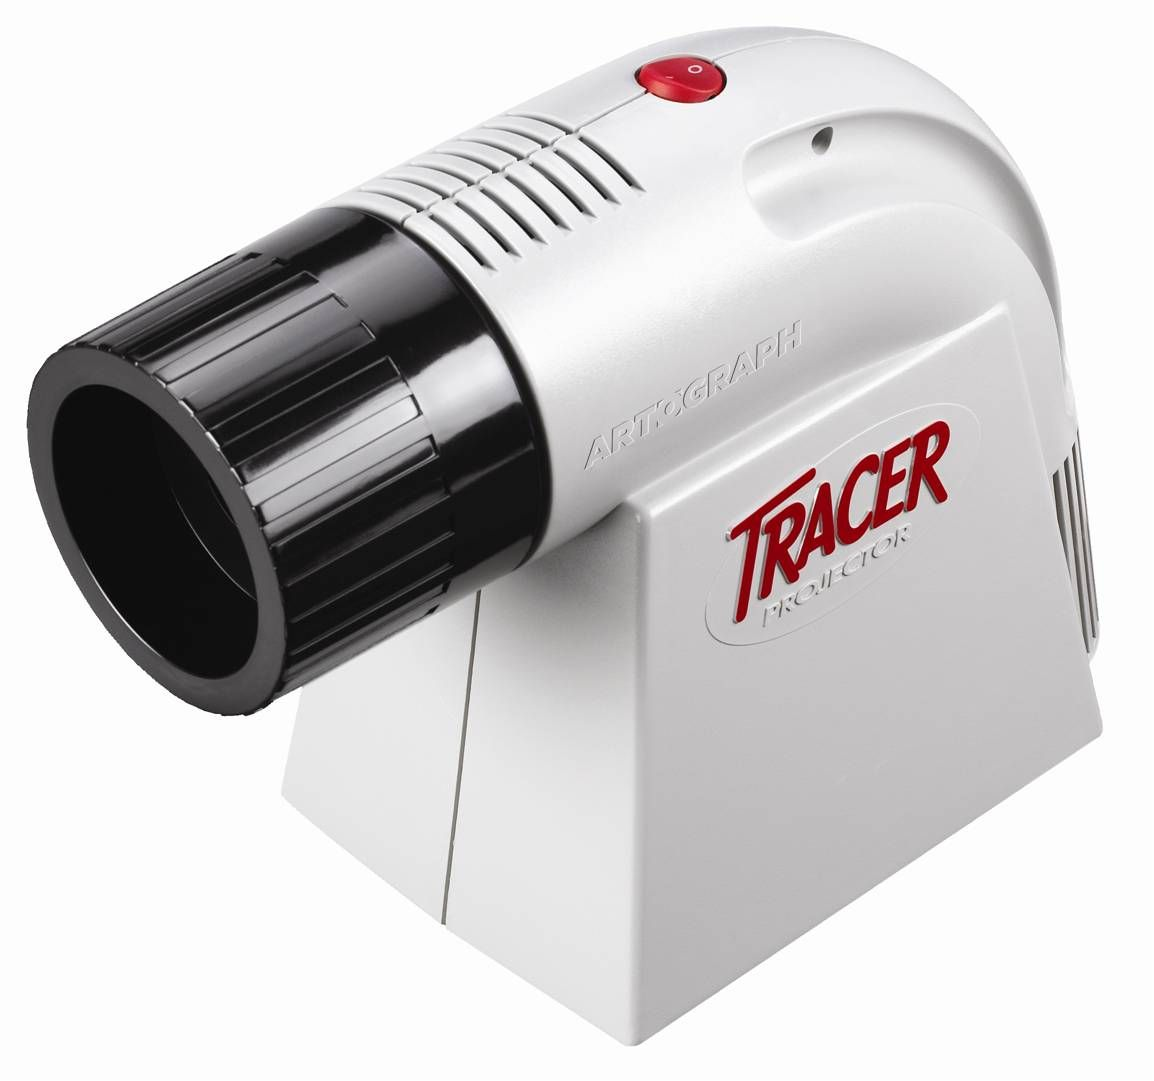 Artists and crafters love artographs bestselling tracer